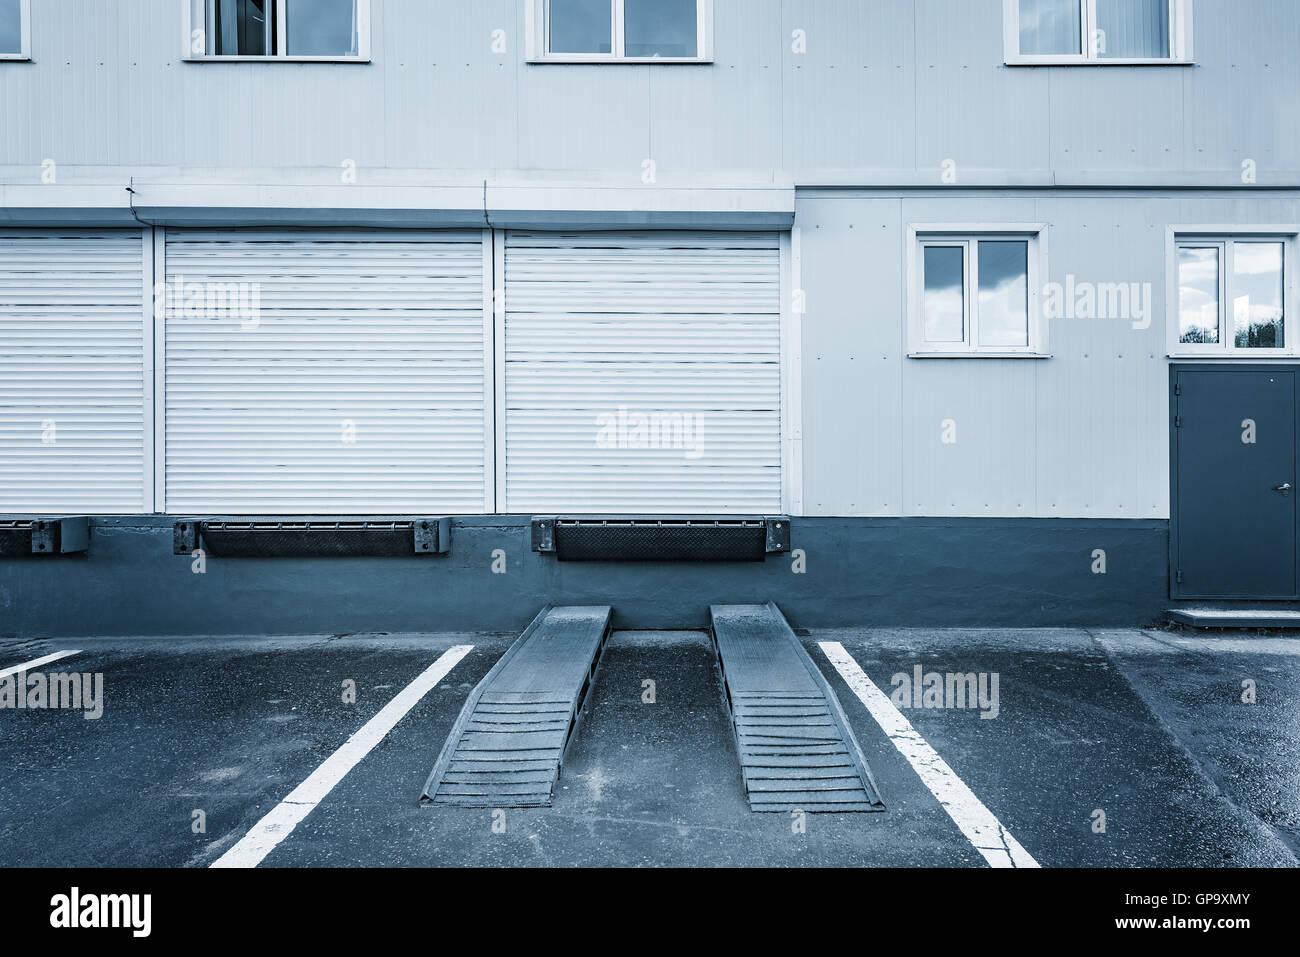 Exterior of the storage units at evening time. - Stock Image & Secure Storage Units Stock Photos u0026 Secure Storage Units Stock ...